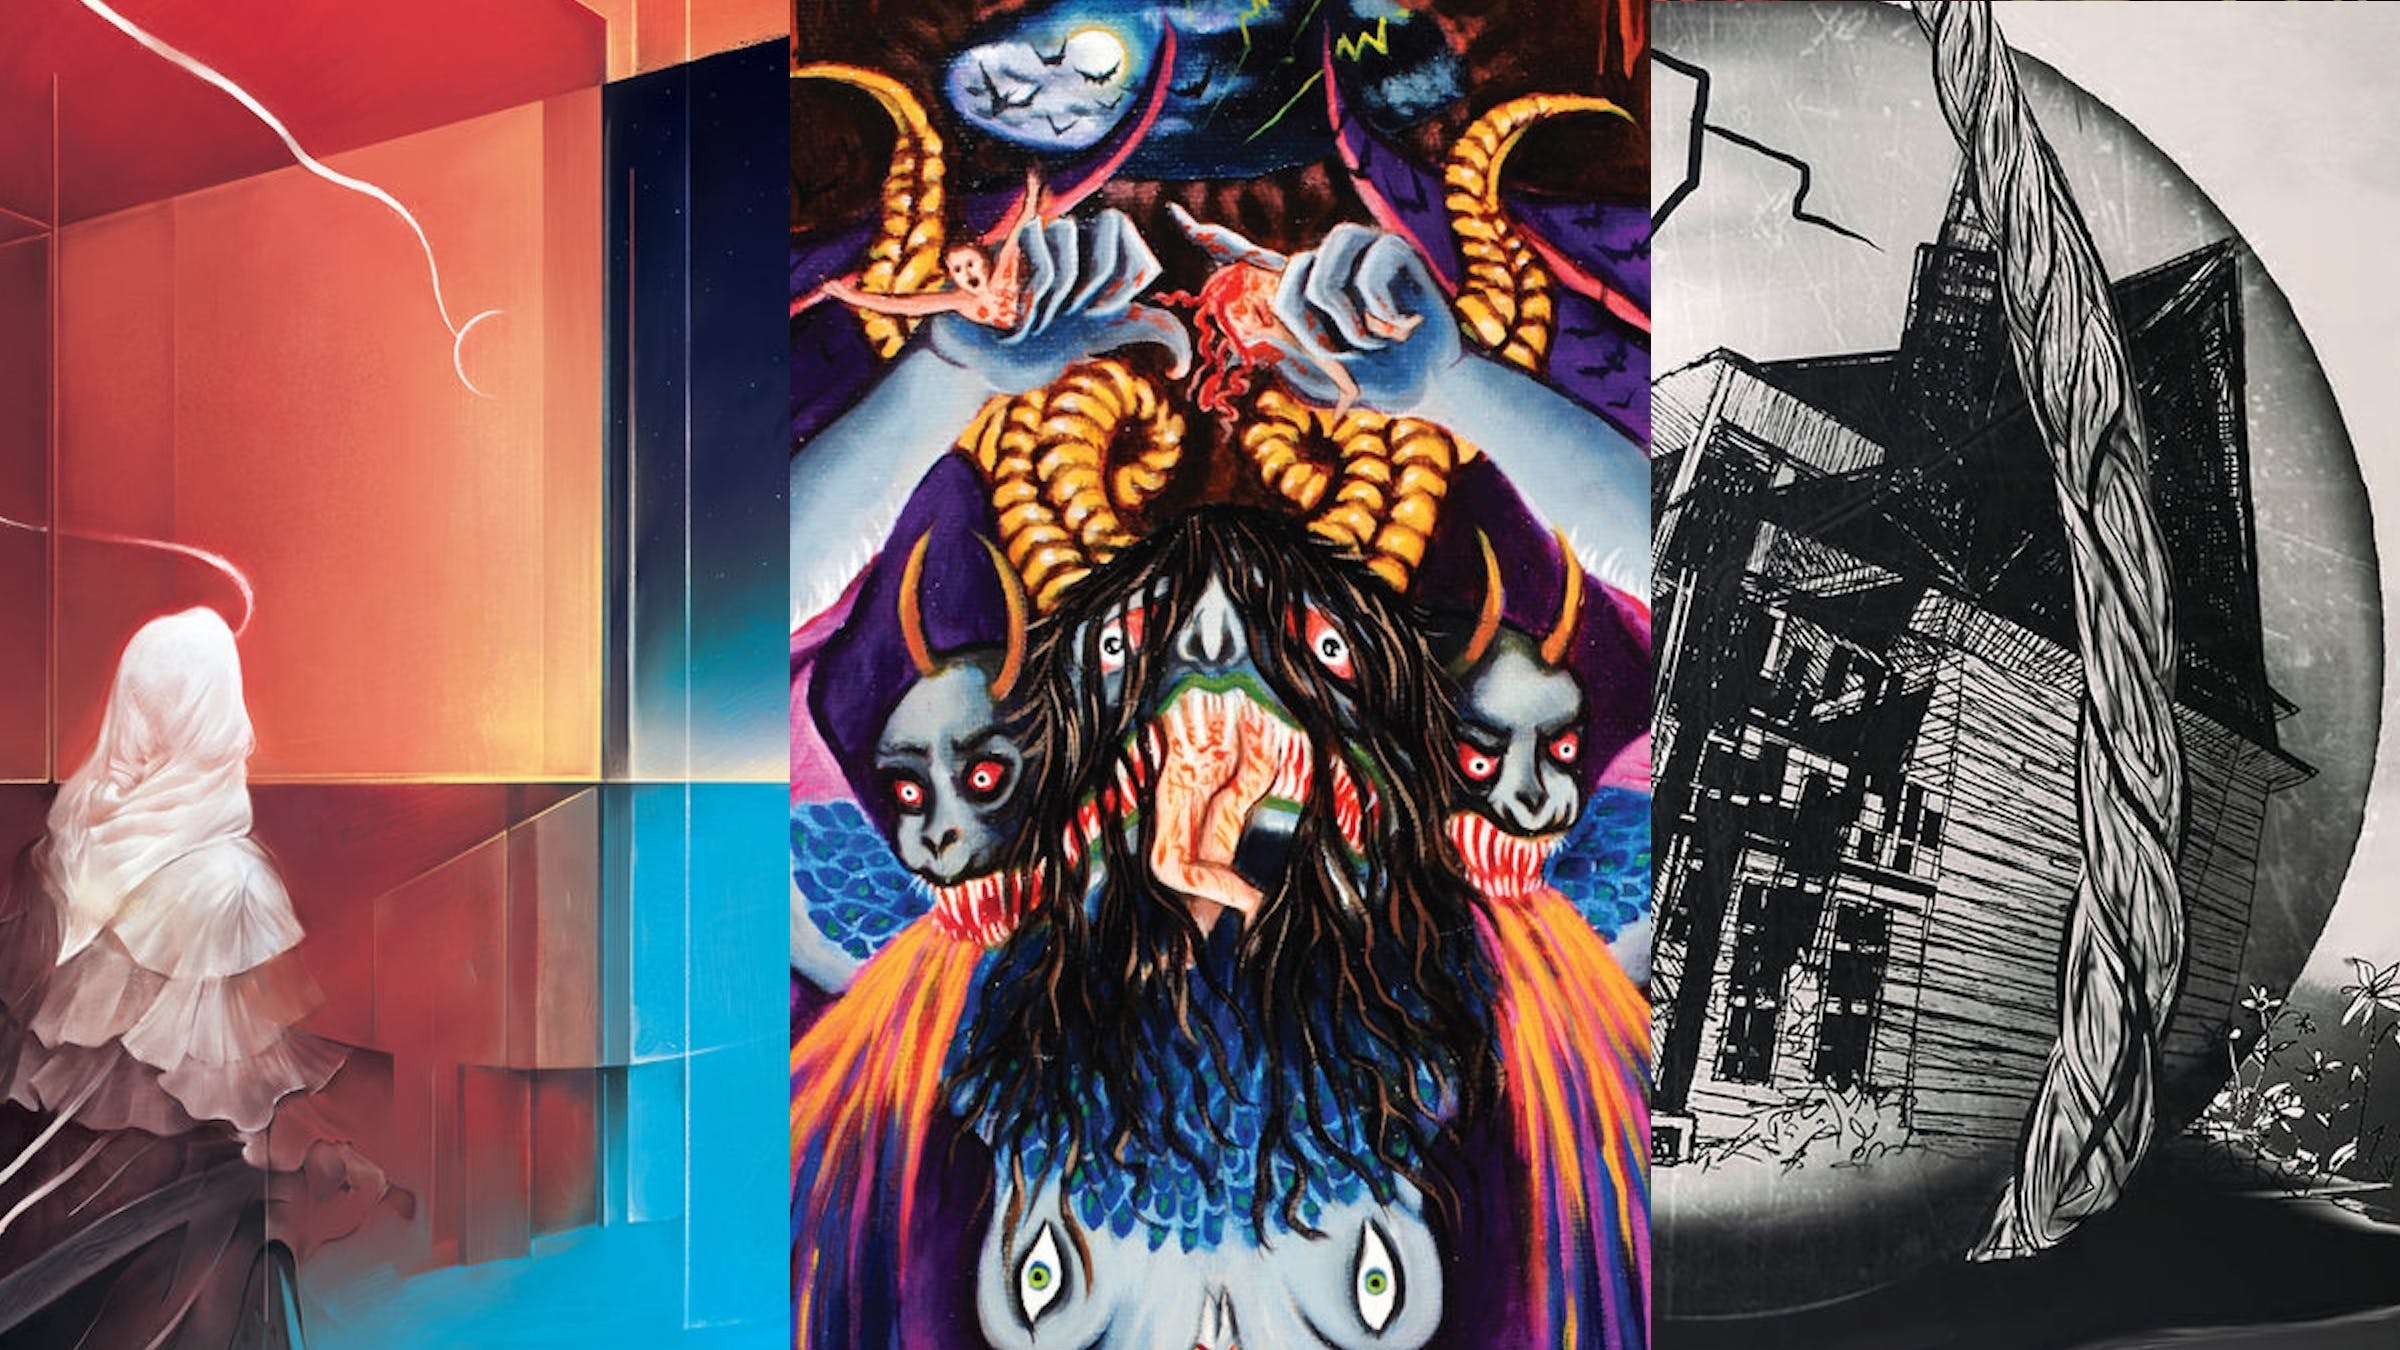 10 Underground Albums Of 2019 That Even Mainstream Fans Need To Know About